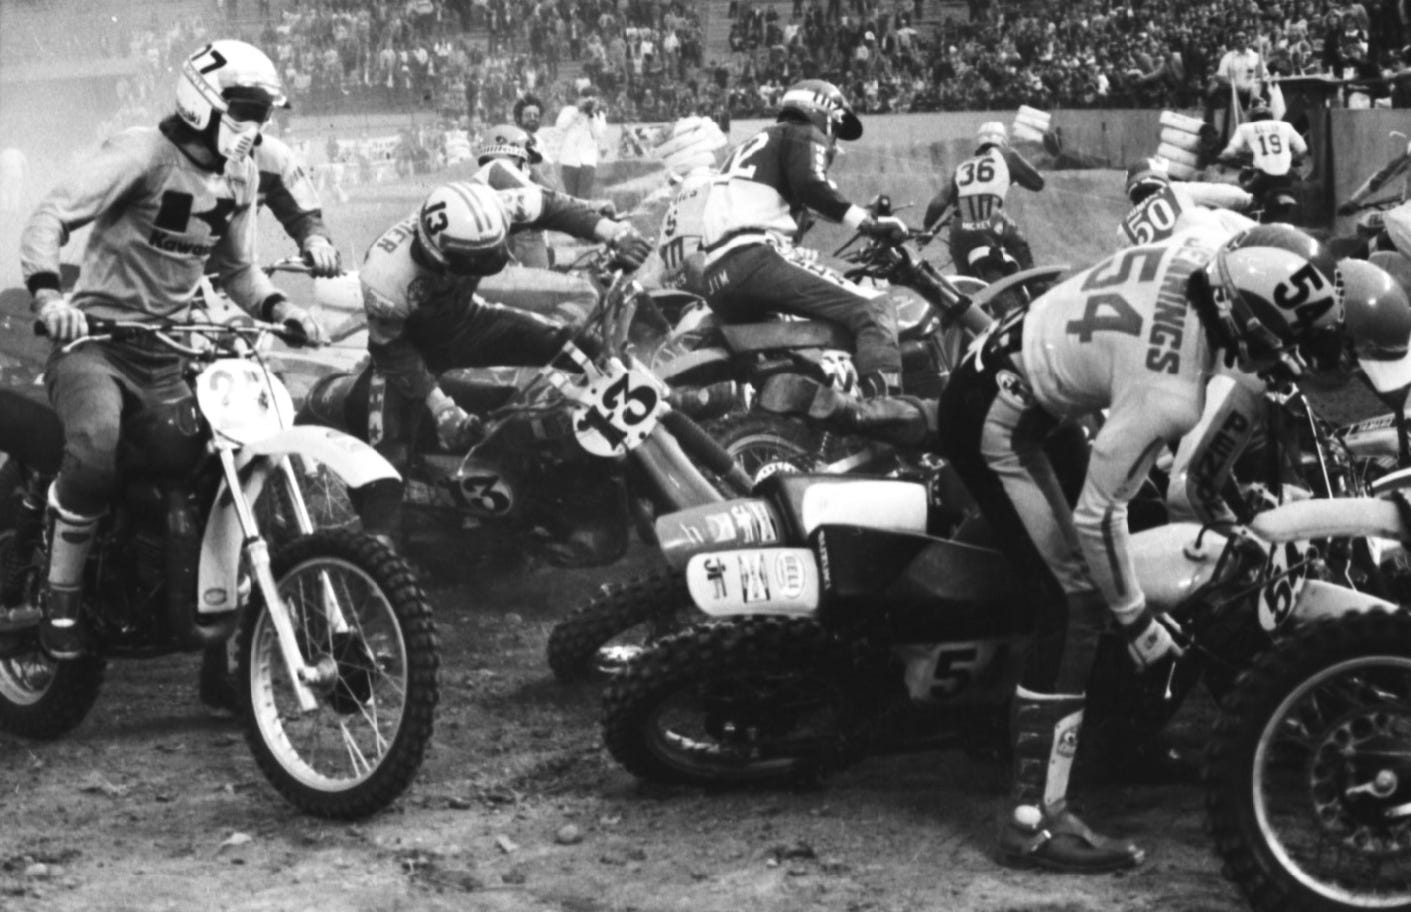 It's a pileup of Supercross bikes and racers at the